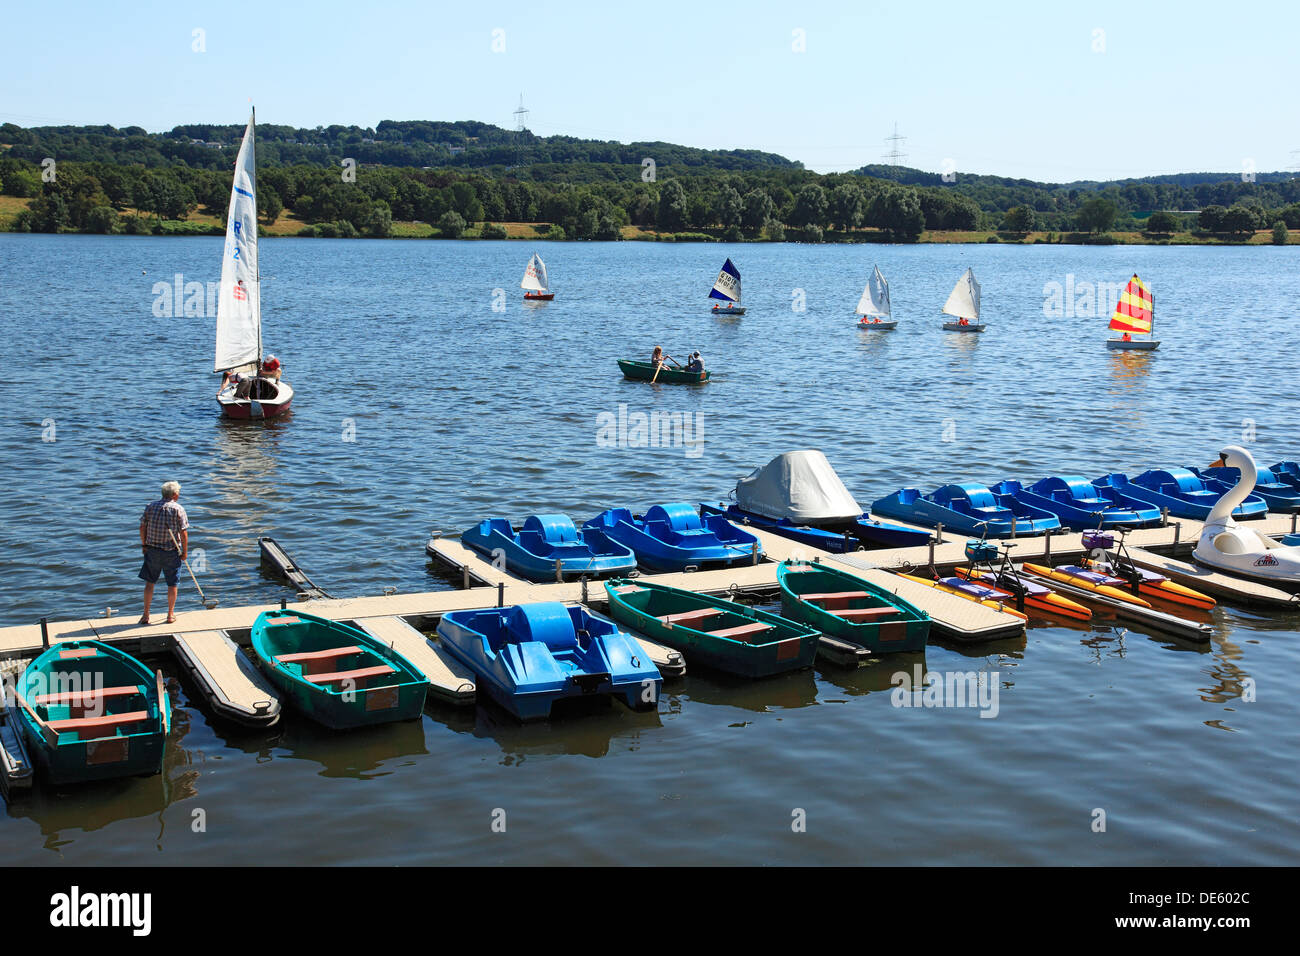 D-Bochum, Ruhr area, Westphalia, North Rhine-Westphalia, NRW, D-Witten, D-Hattingen, Kemnader See, Kemnade Lake, Ruhrstausee, Ruhr reservoir, boats on the water, boat rental Stock Photo